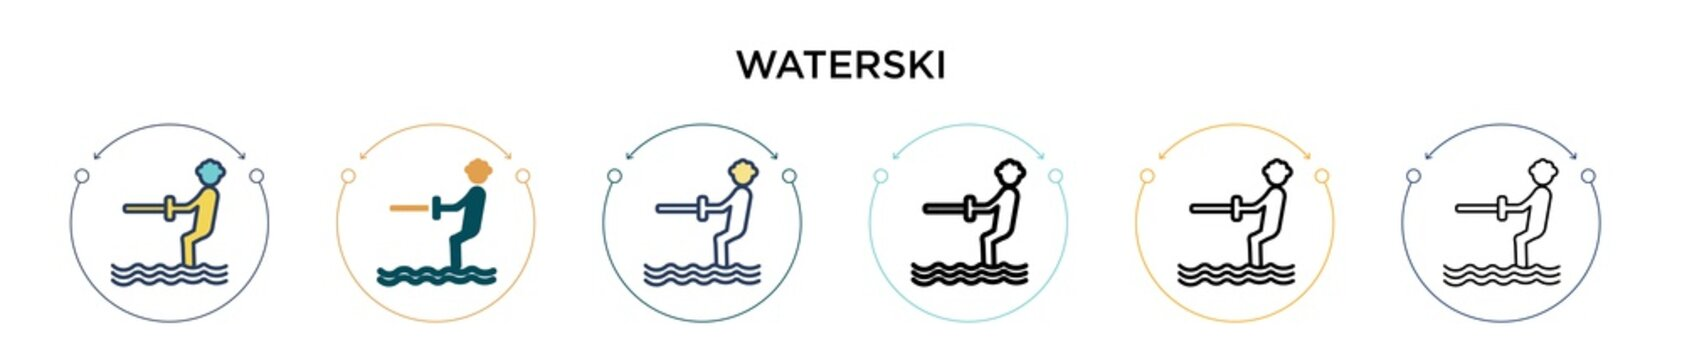 Waterski icon in filled, thin line, outline and stroke style. Vector illustration of two colored and black waterski vector icons designs can be used for mobile, ui, web